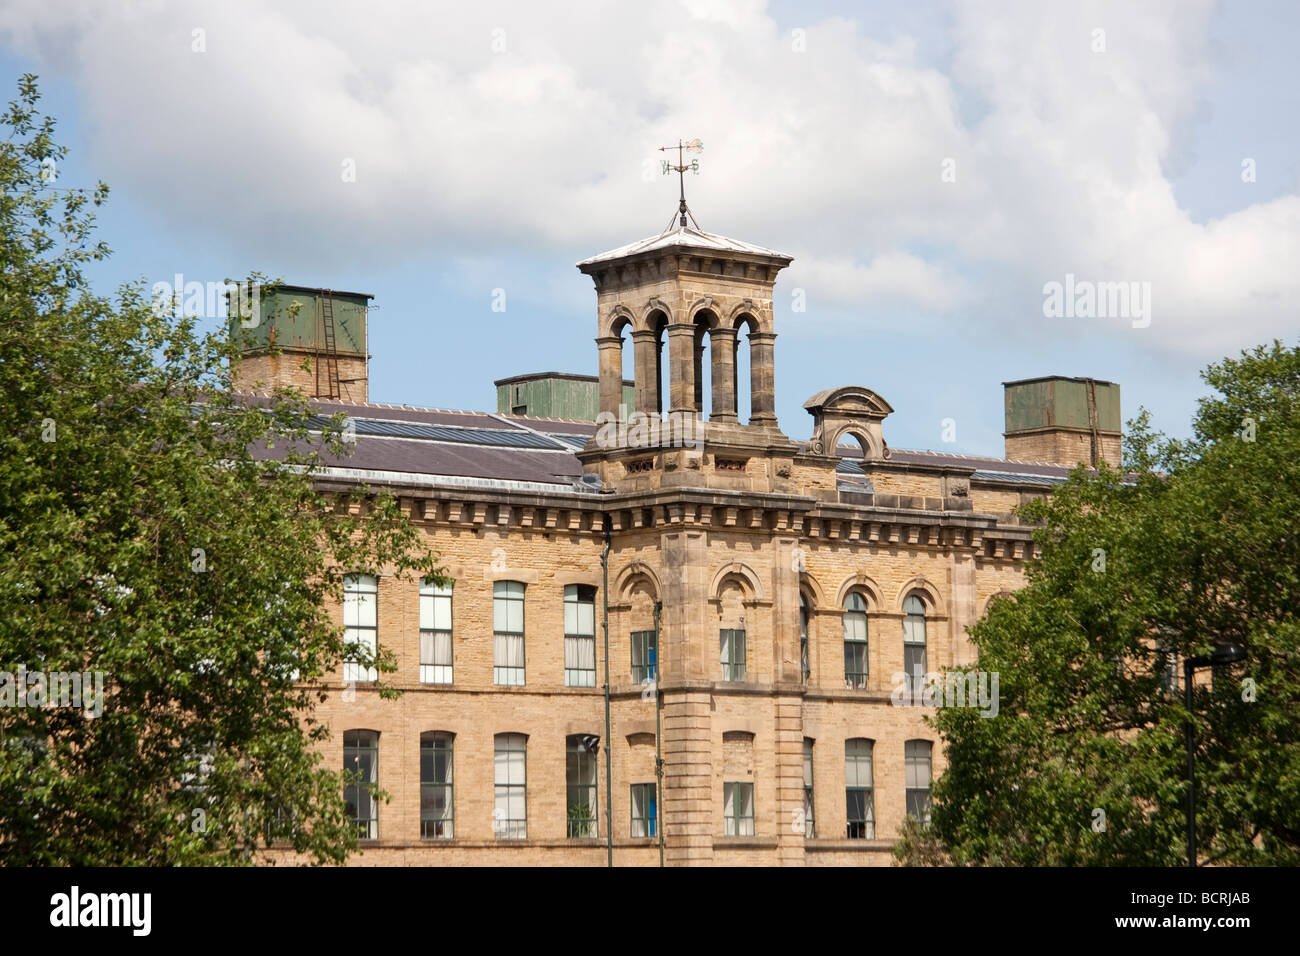 Salts Mill, Saltaire, West Yorkshire, England - Stock Image